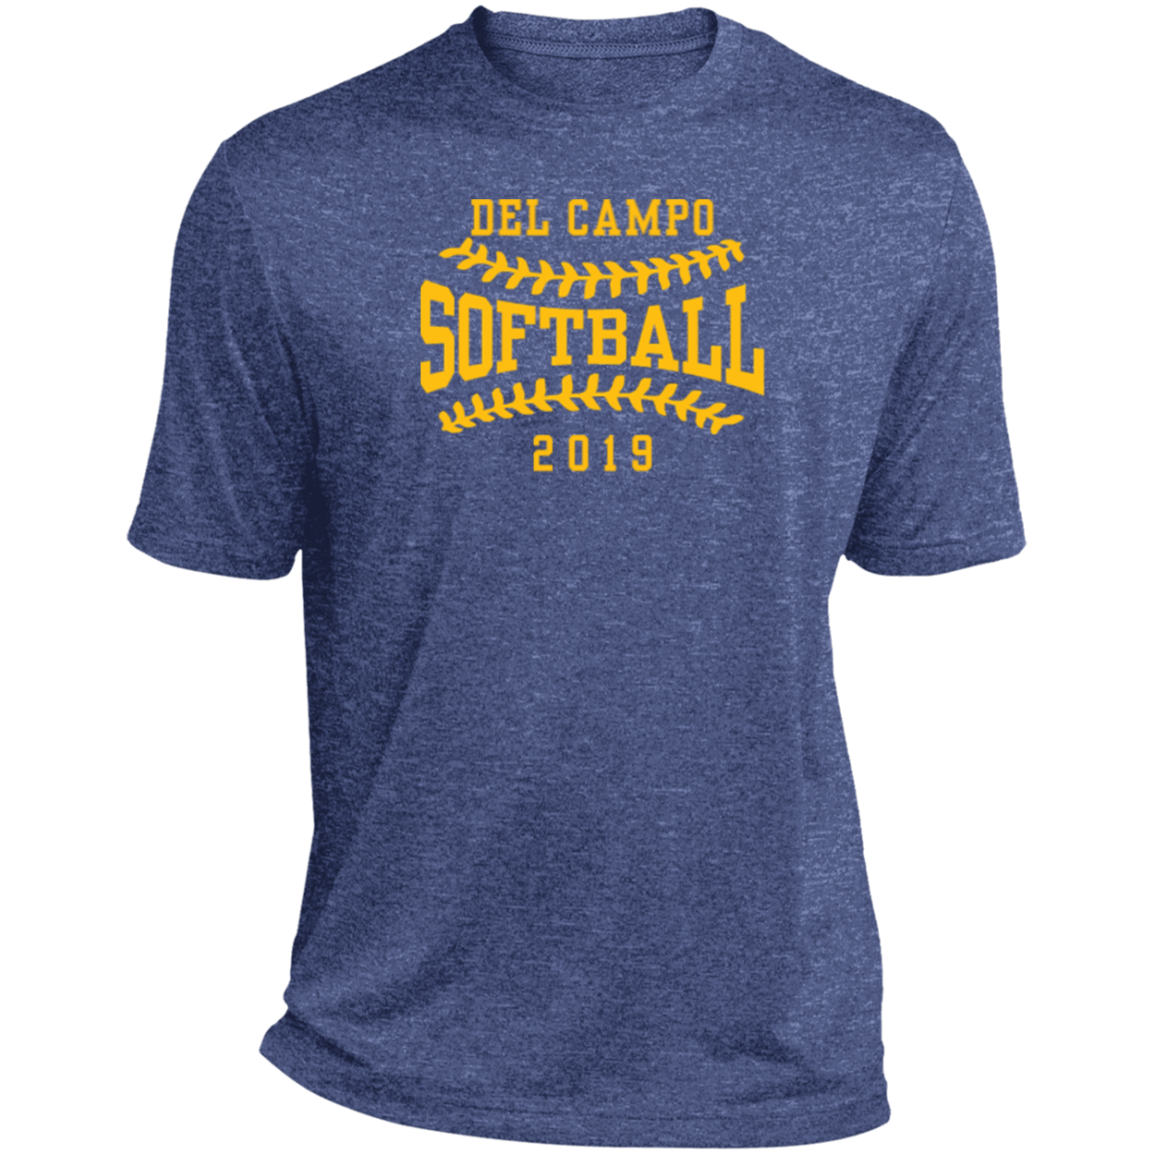 71d40b961 Del Campo High School Heather Dri-Fit Moisture-Wicking Tee for Him -  SpiritShop.com